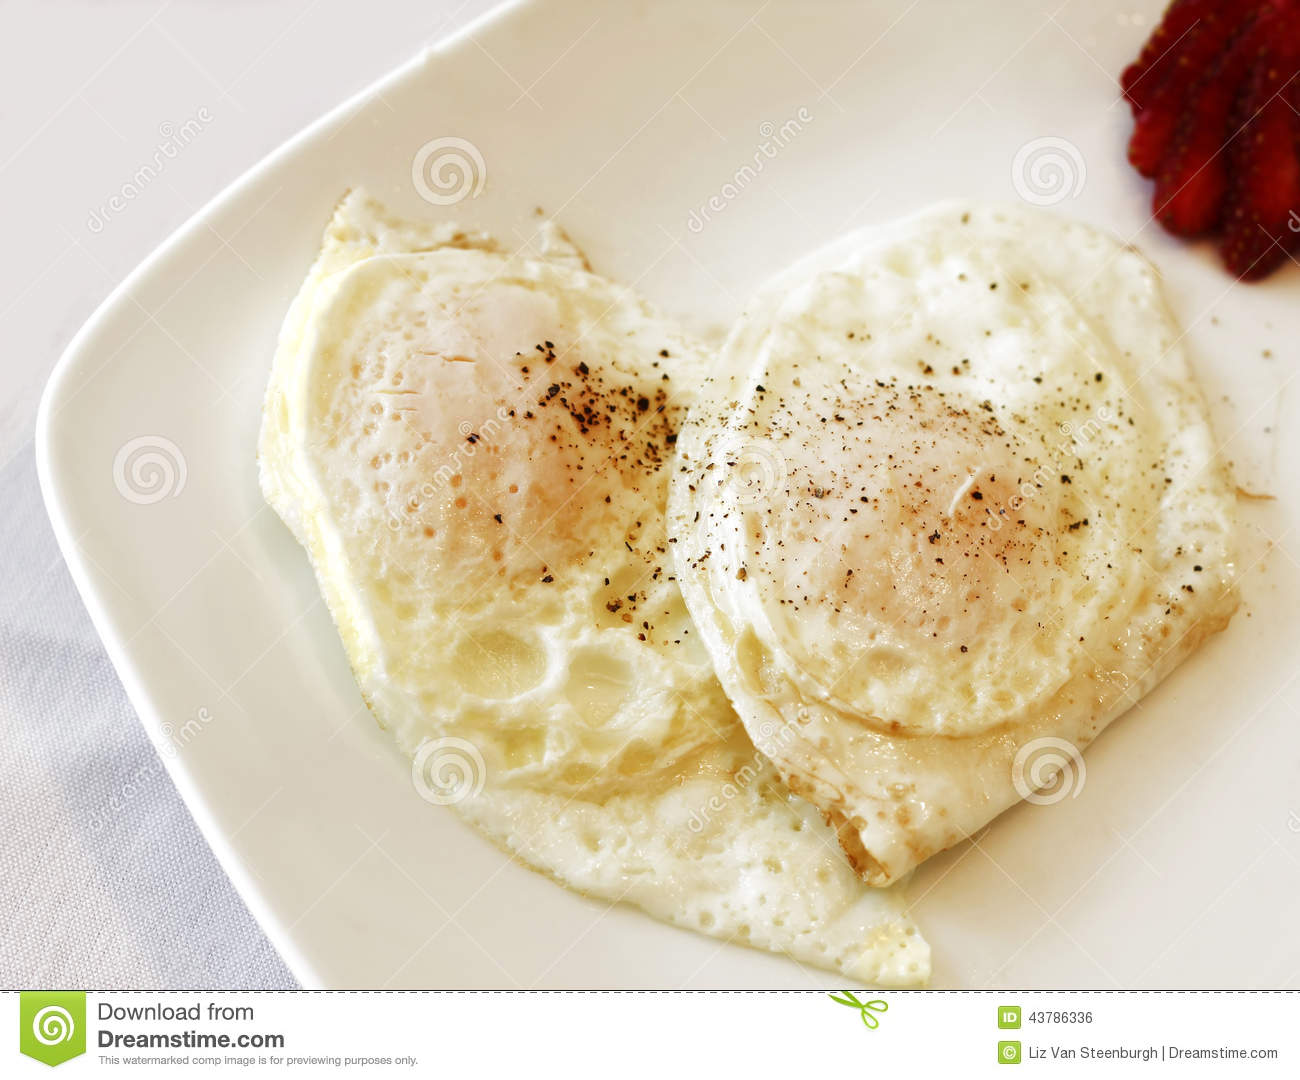 Two eggs cooked over easy, seasoned with pepper on a white plate.